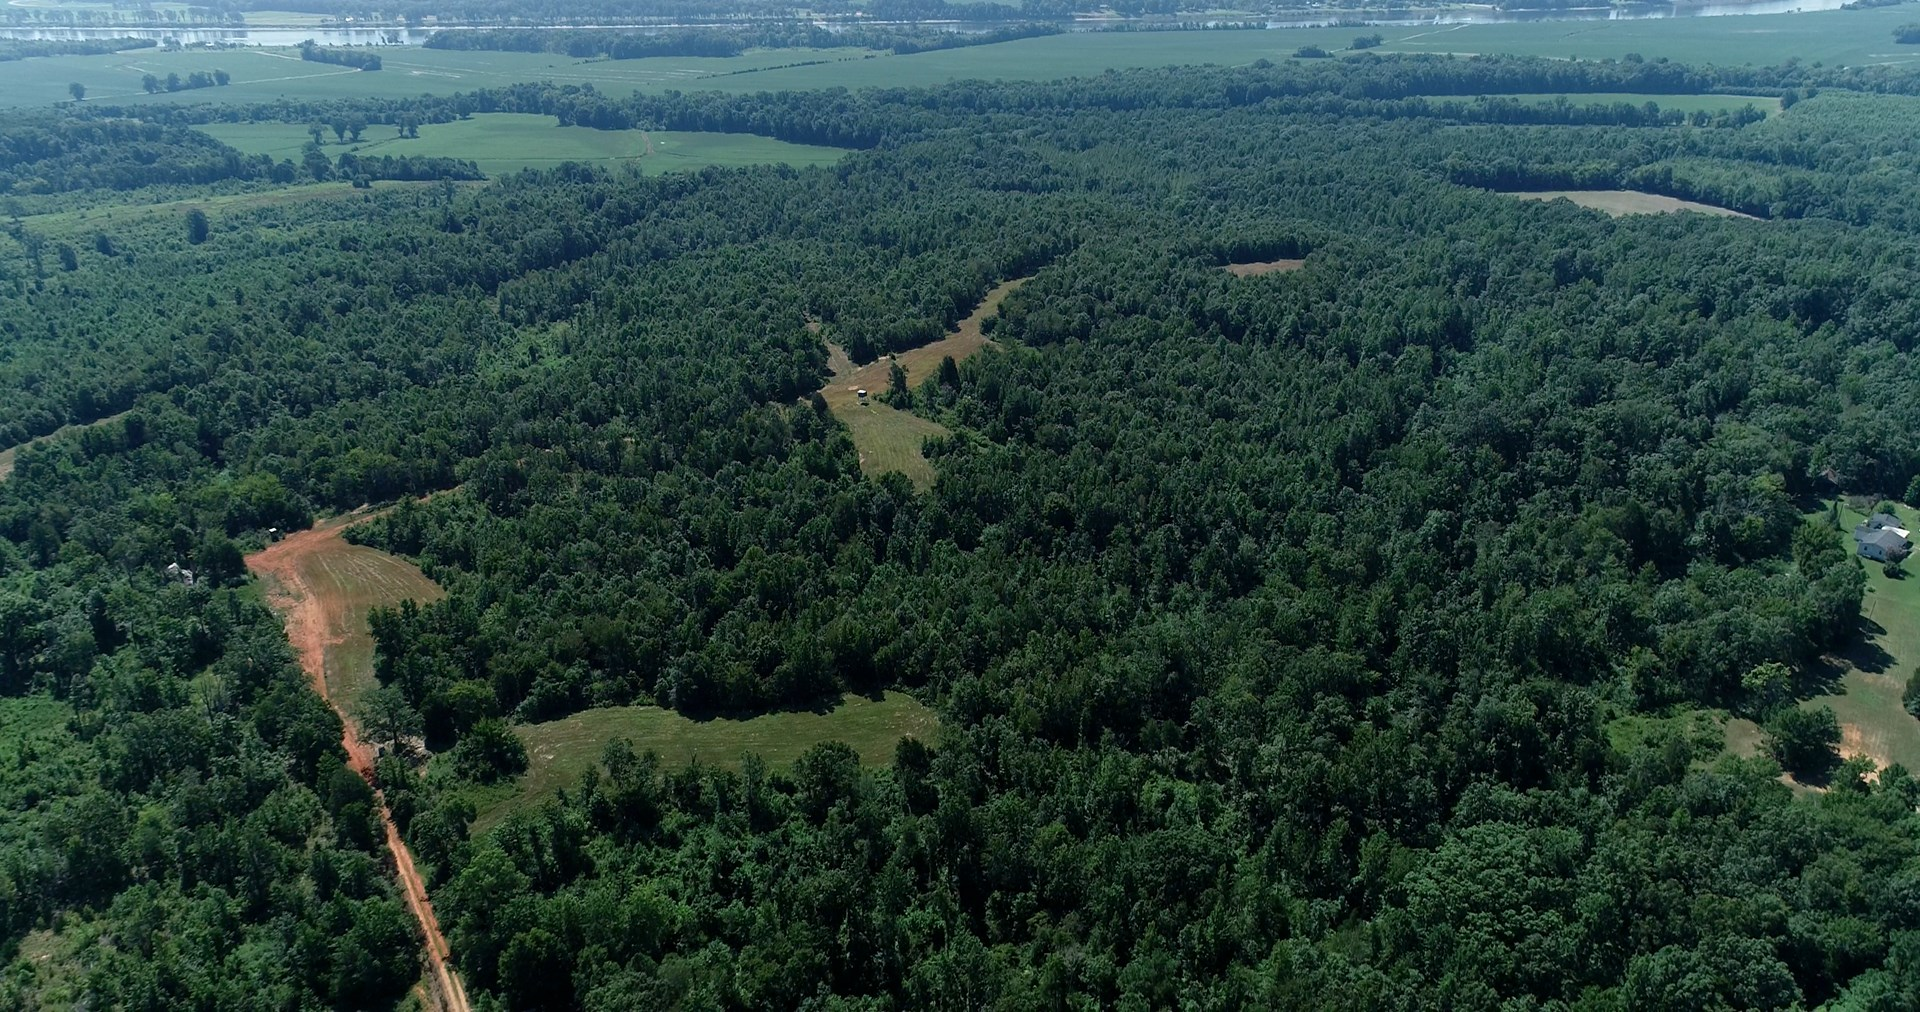 ACREAGE LAND FOR SALE IN HARDIN COUNTY